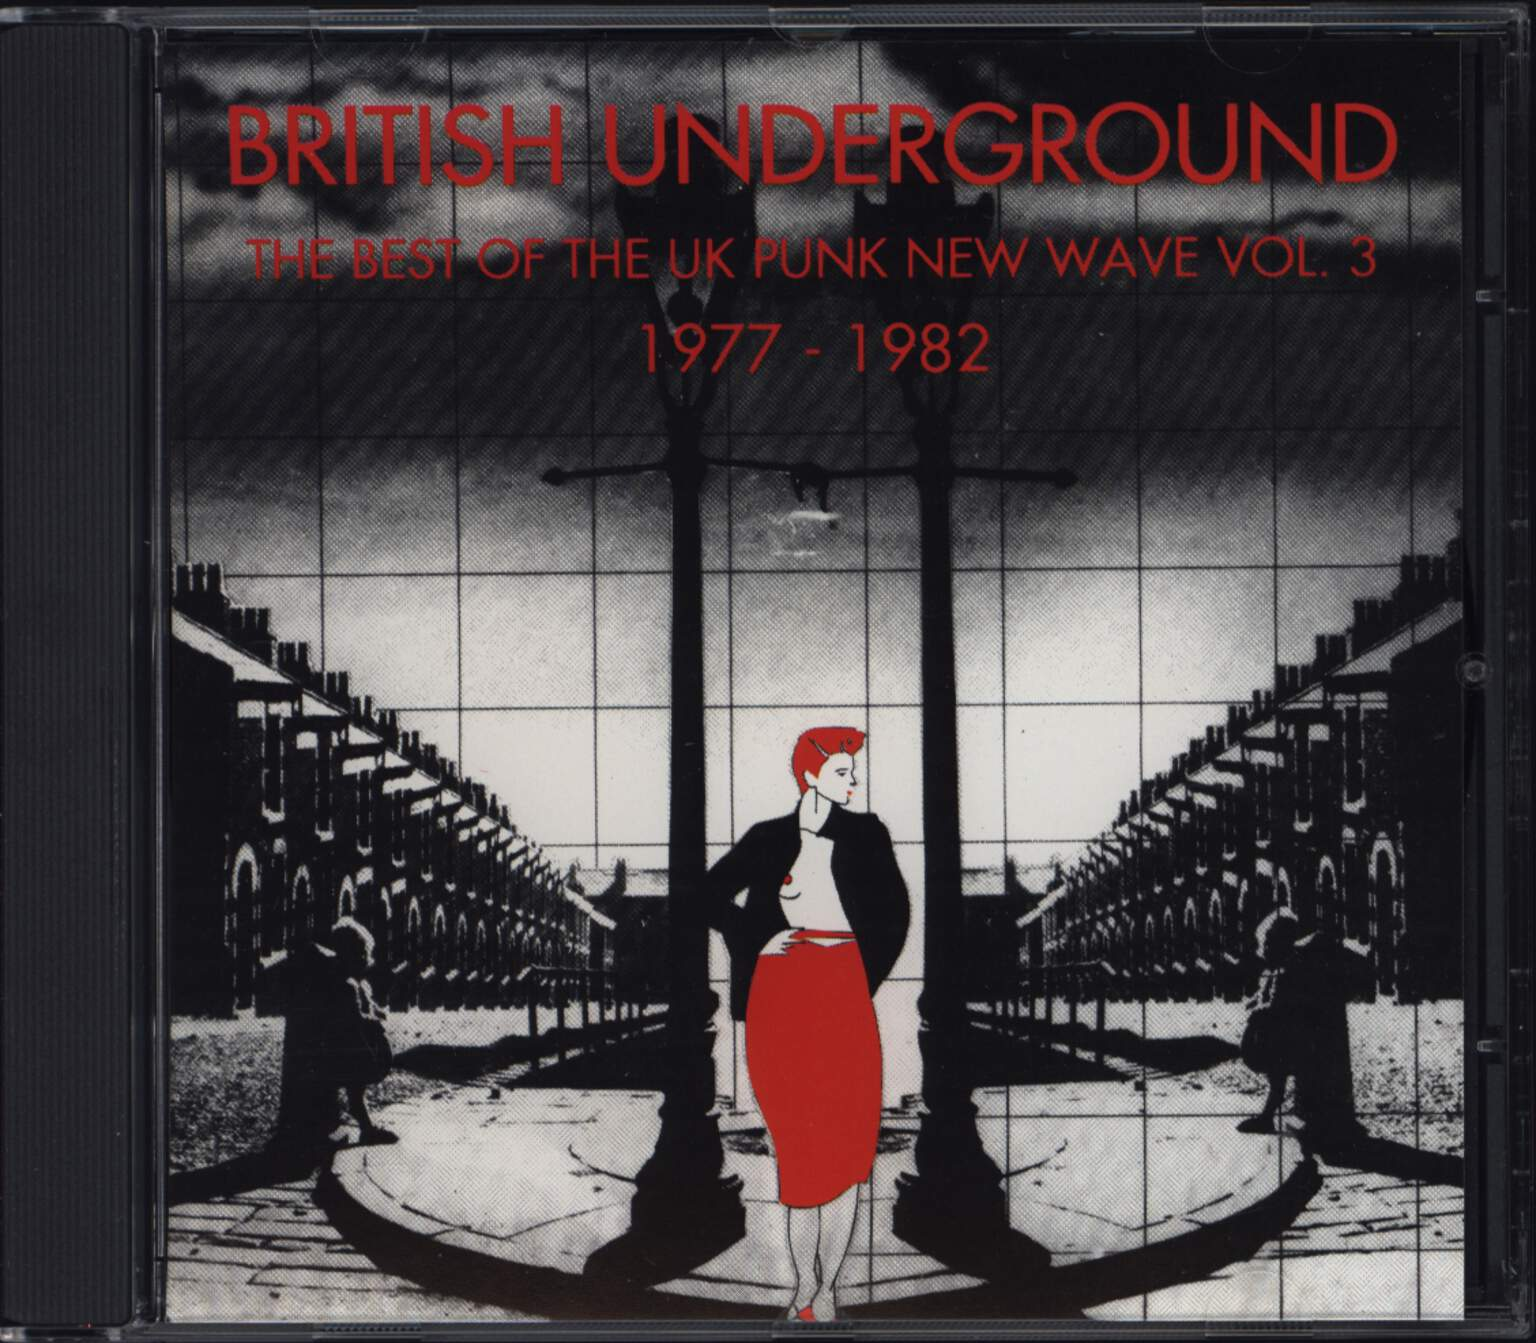 Various: British Underground The Best Of The Uk Punk New Wave 1977 - 1982 Vol. 3, CD